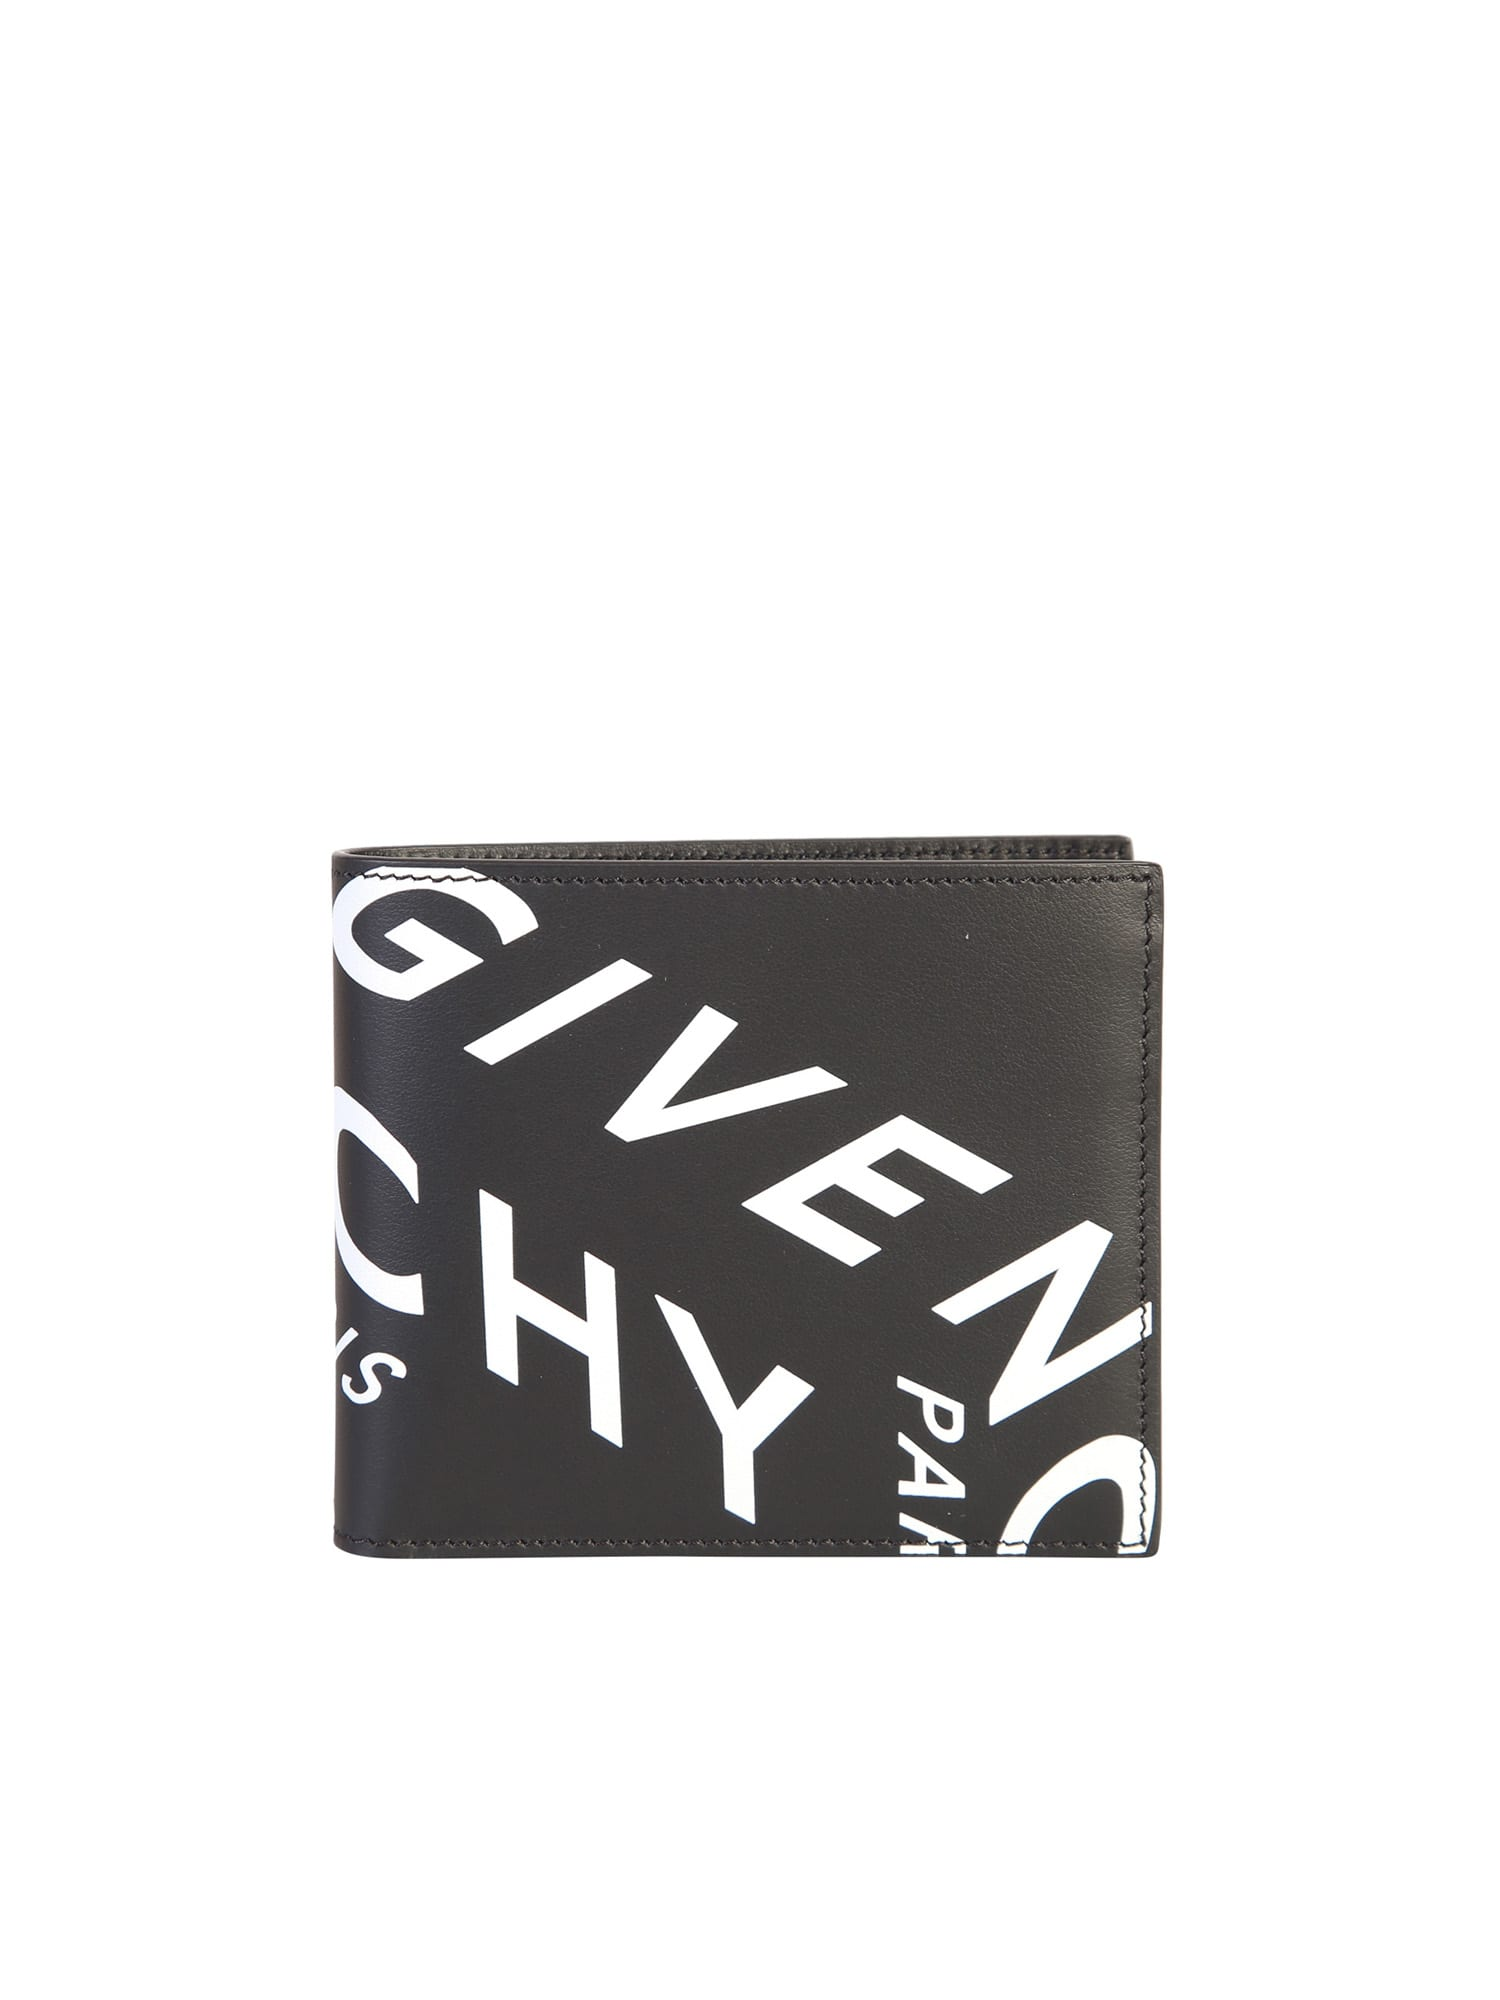 GIVENCHY BRANDED WALLET